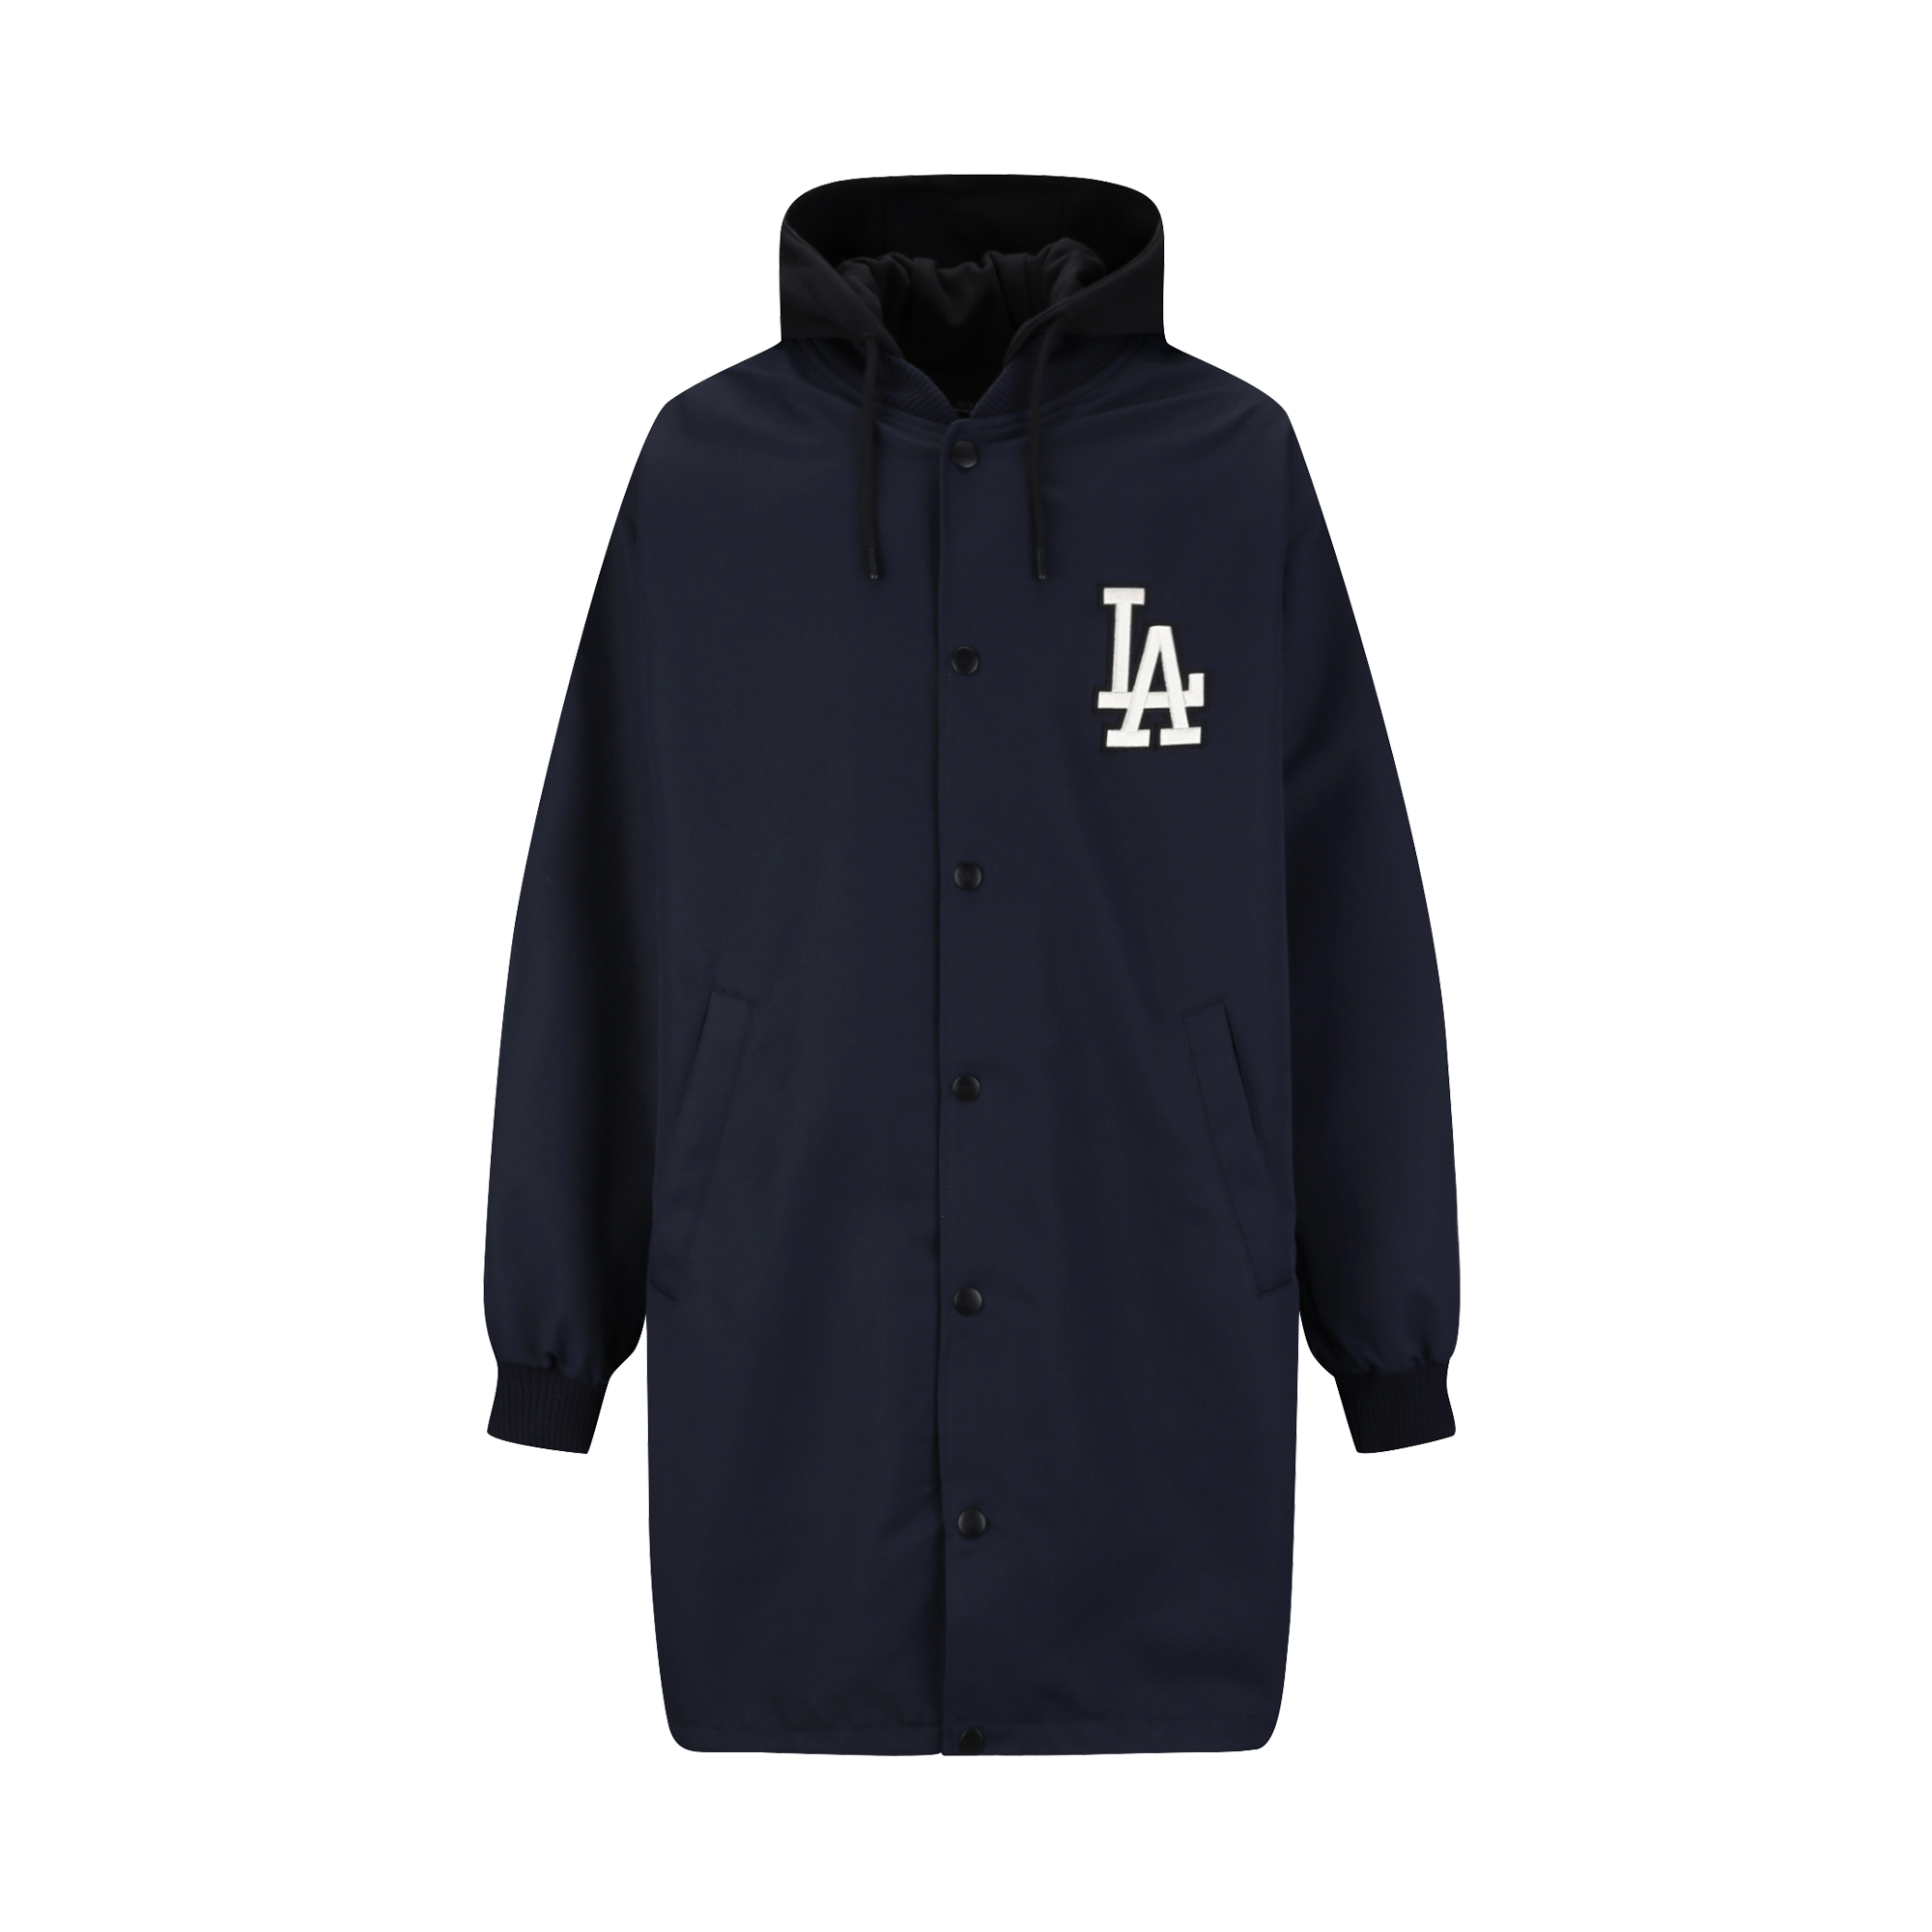 LA DODGERS BASIC LONG VARSITY JACKET